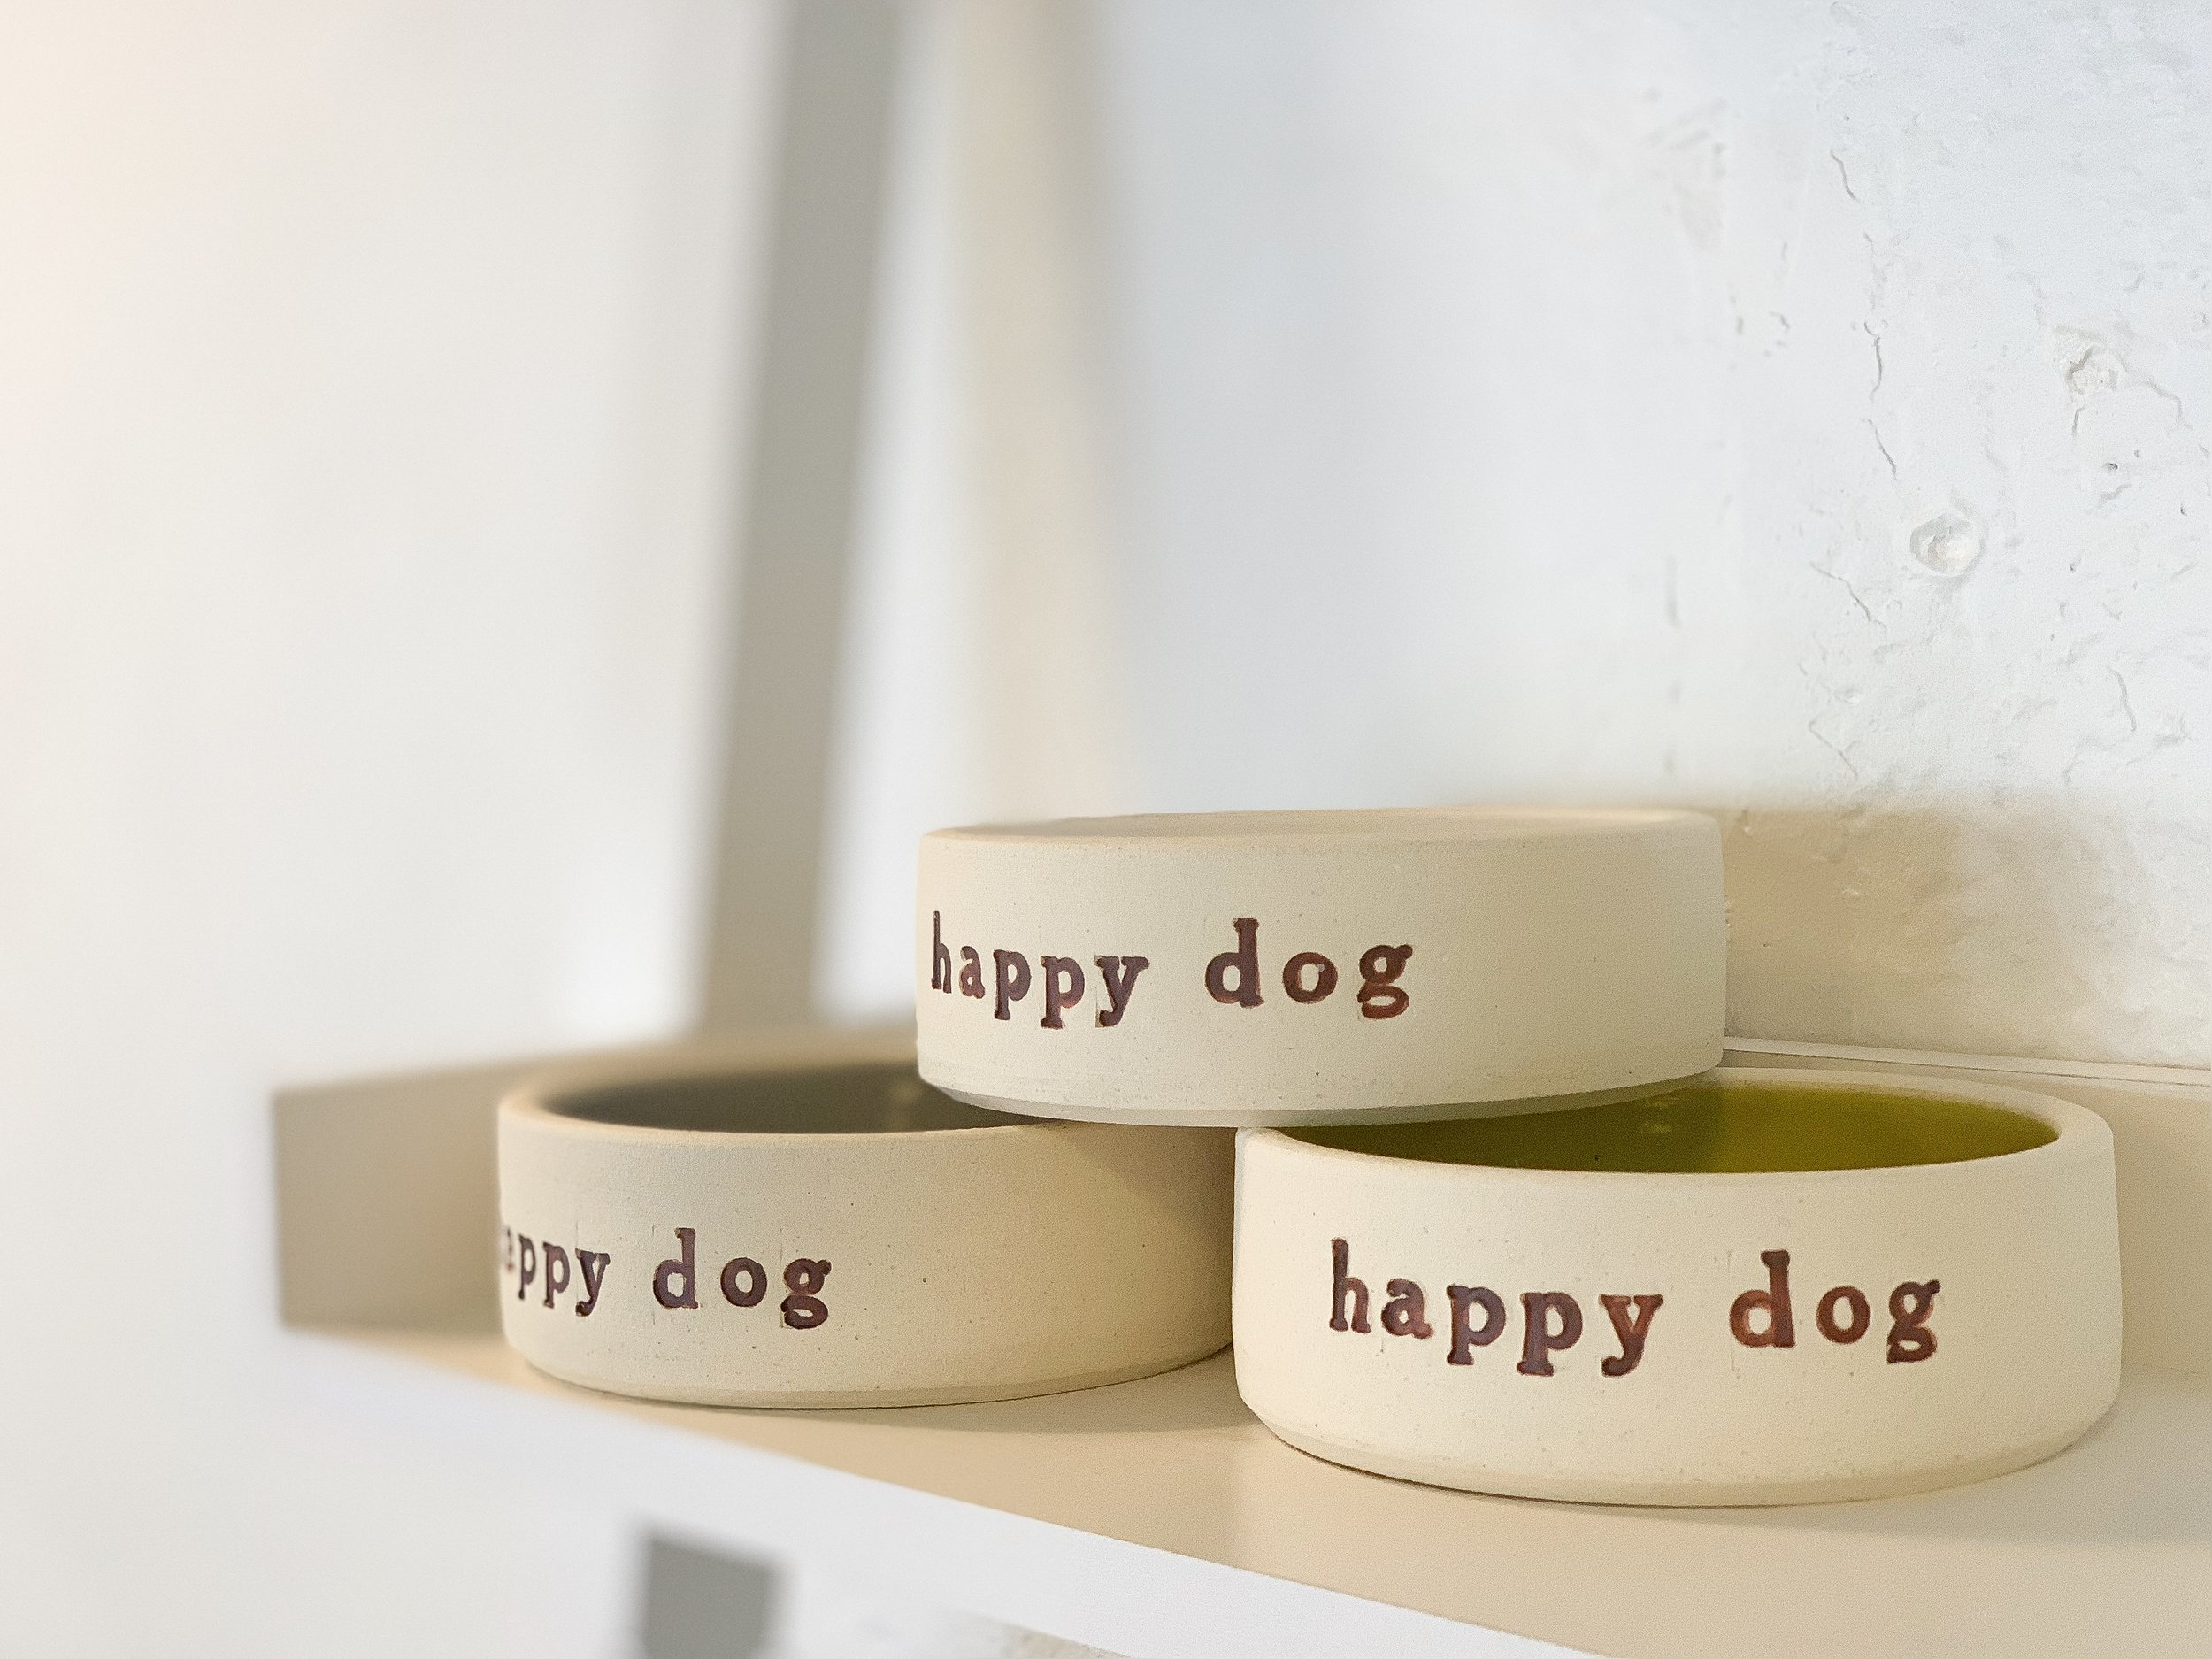 Dog bowl - $20 (S) or $30 (L)